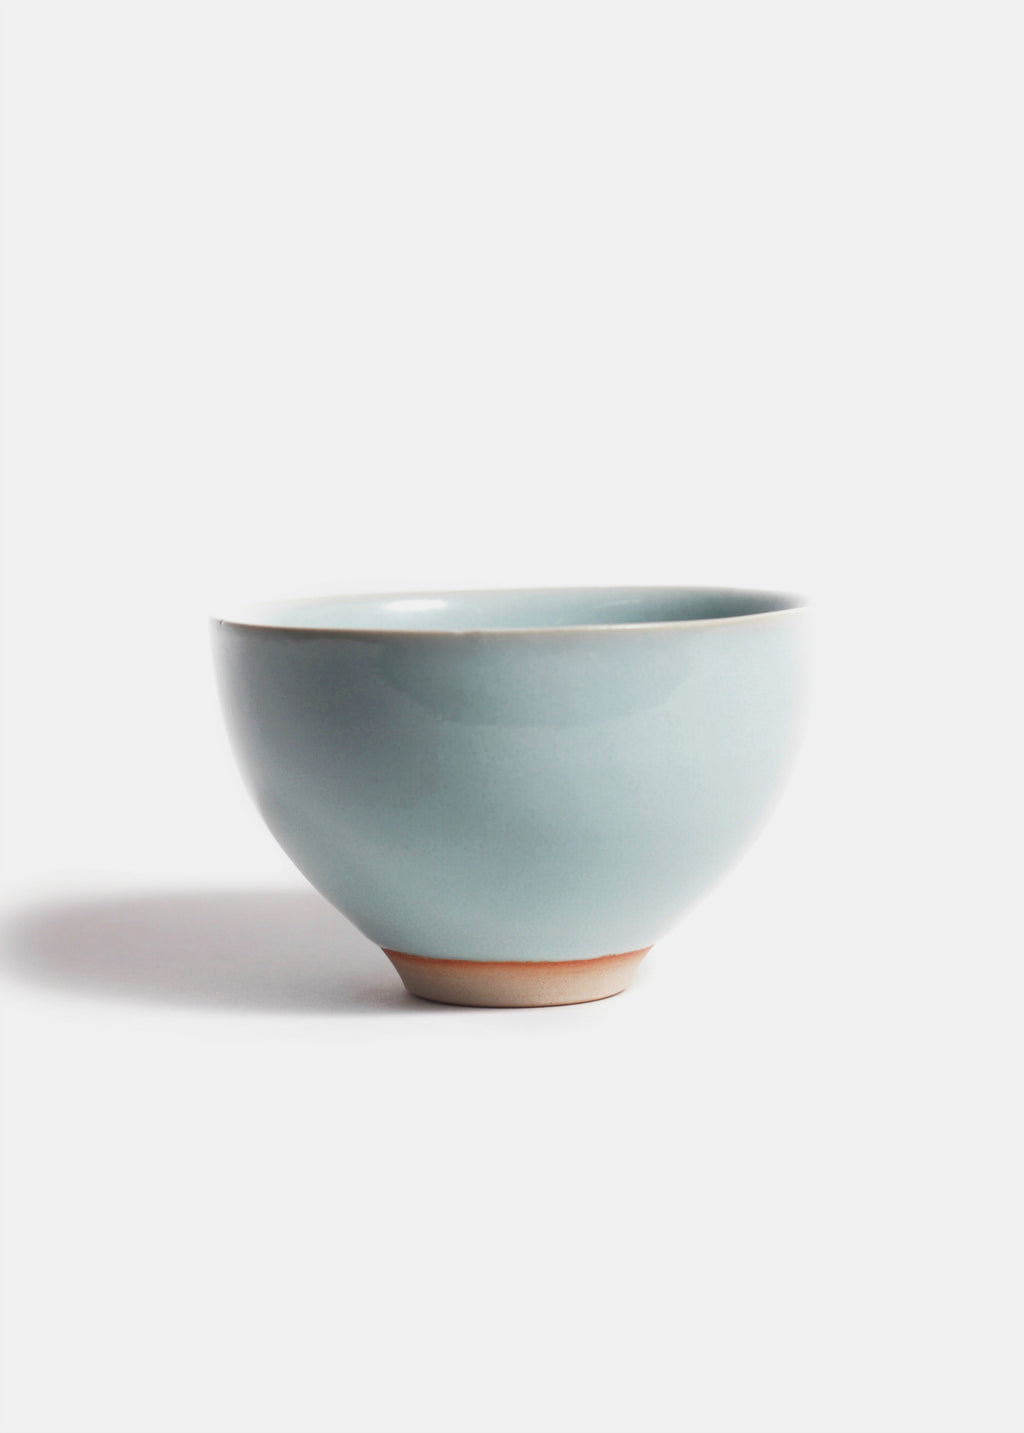 Japanese Bowl - YUYU Sustainable Home Goods